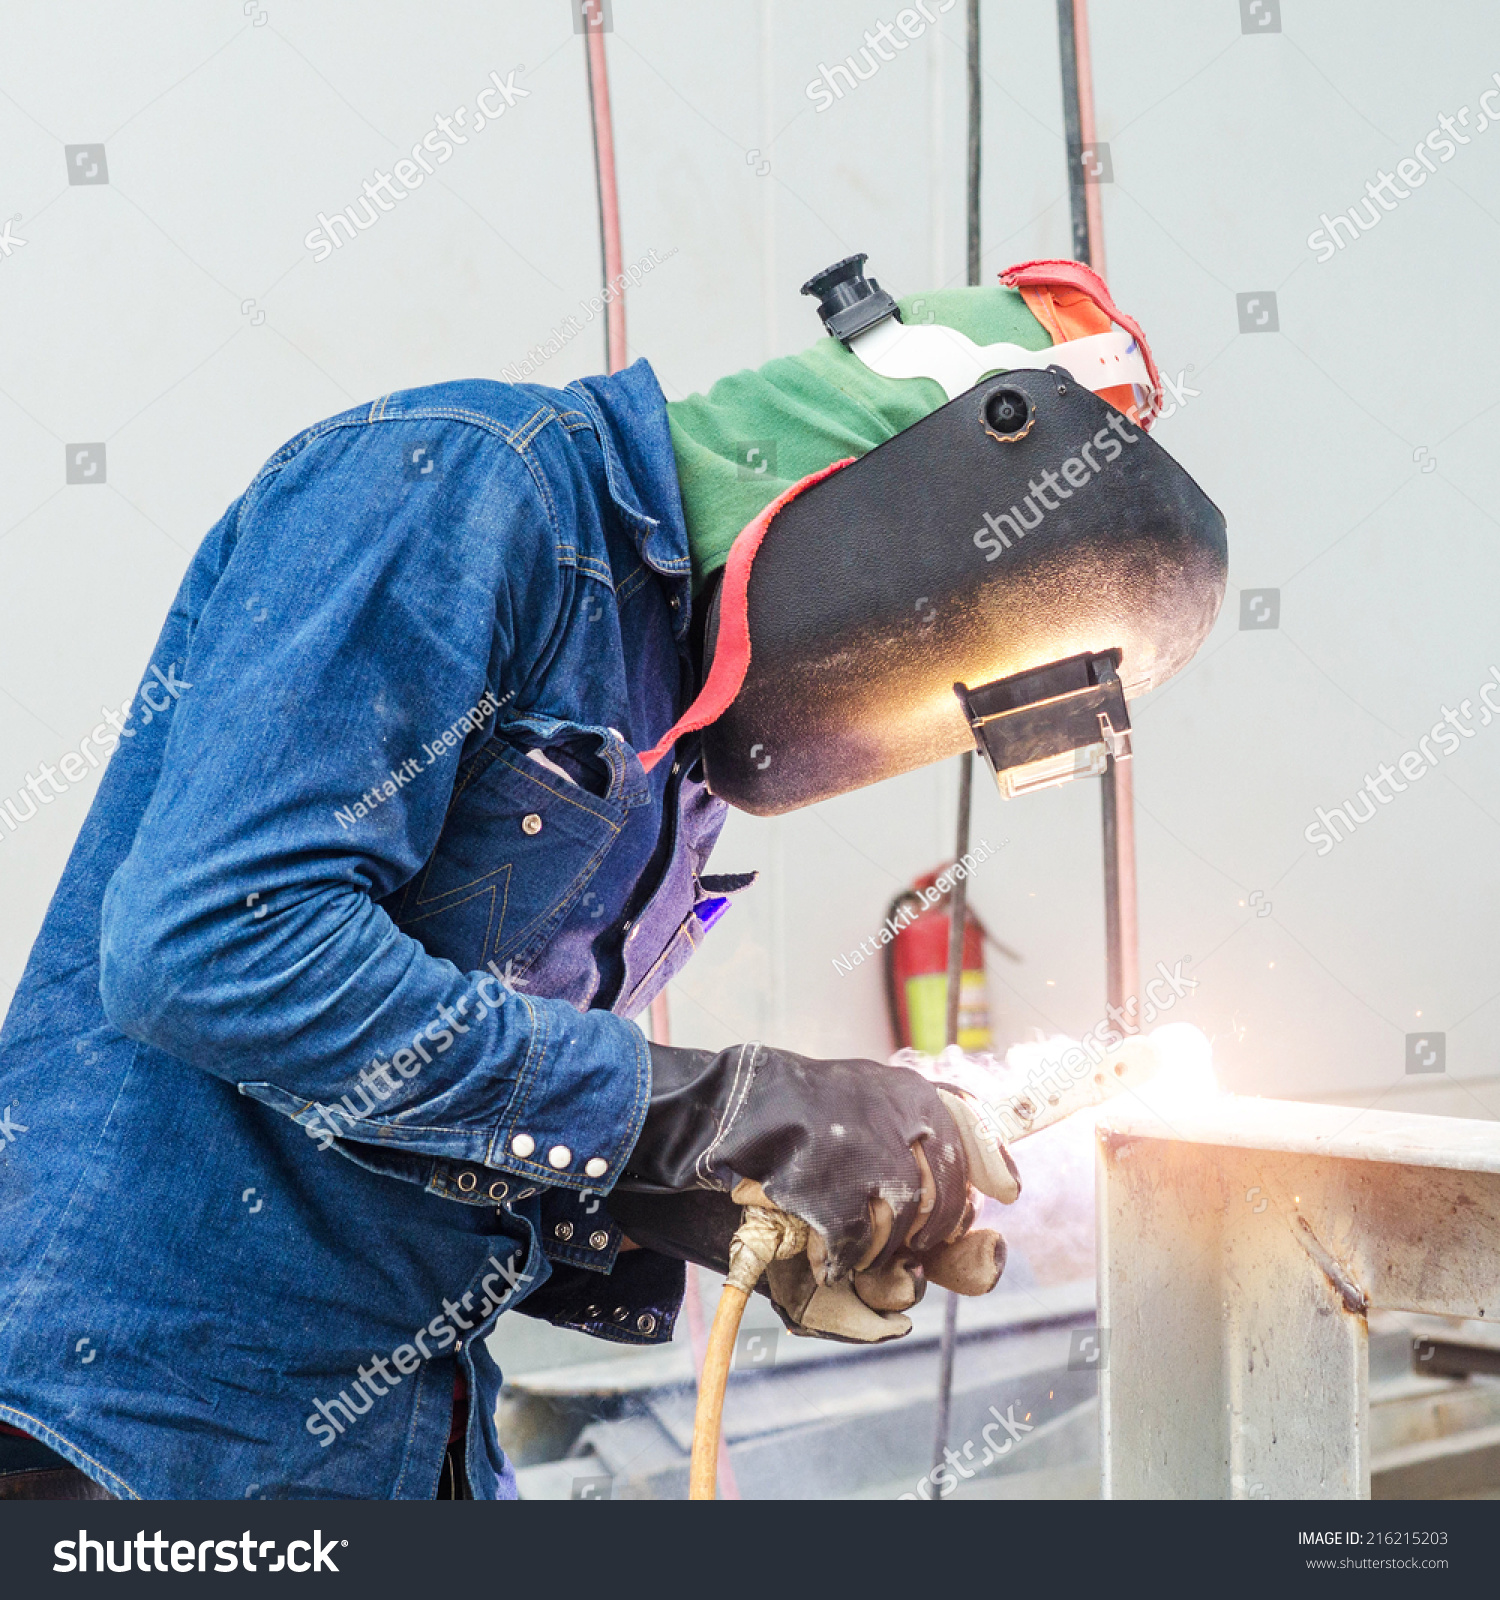 Stock Photo Welder Man